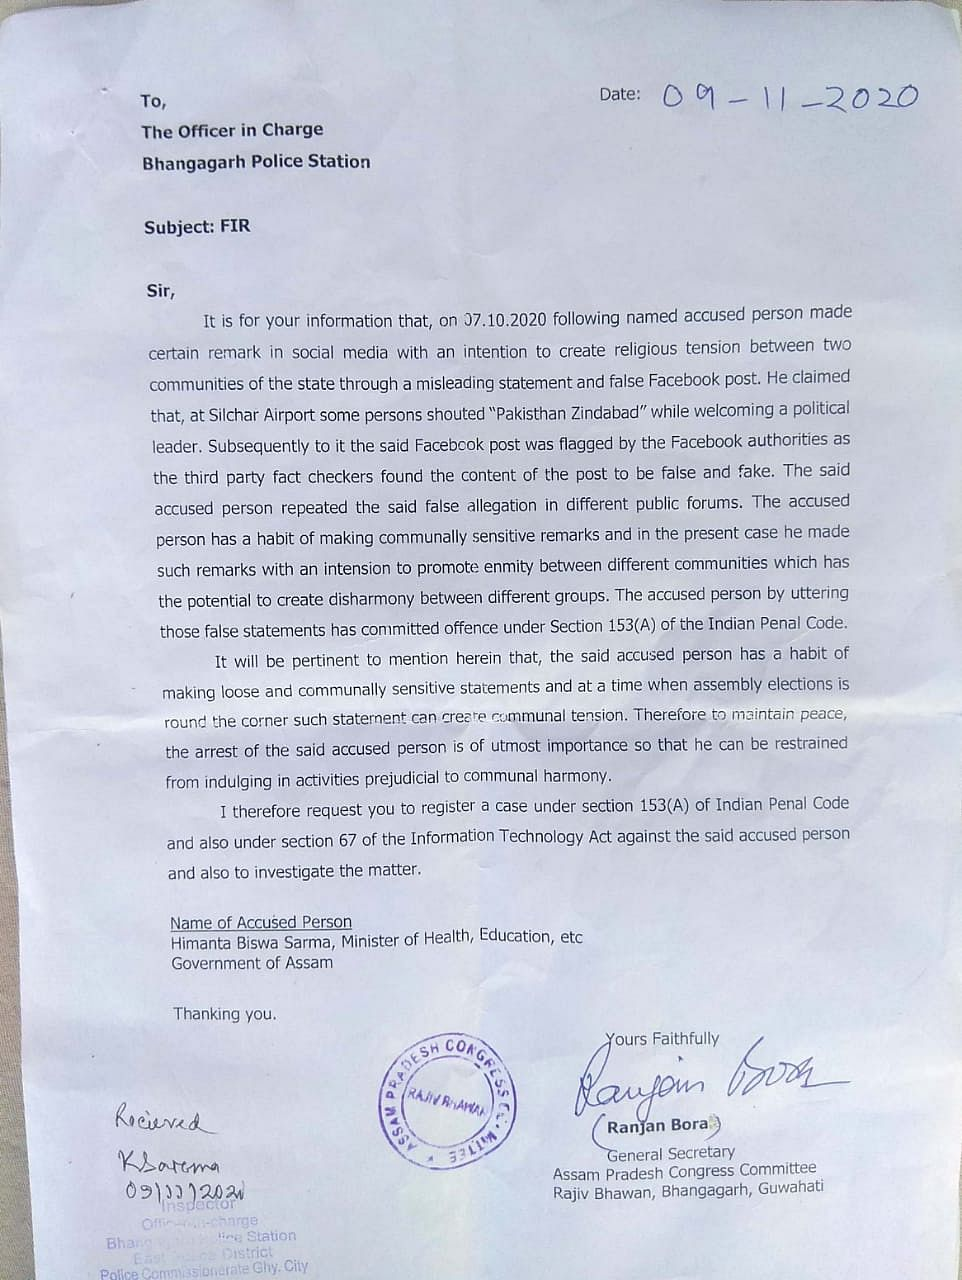 Copy of the complaint filed by APCC